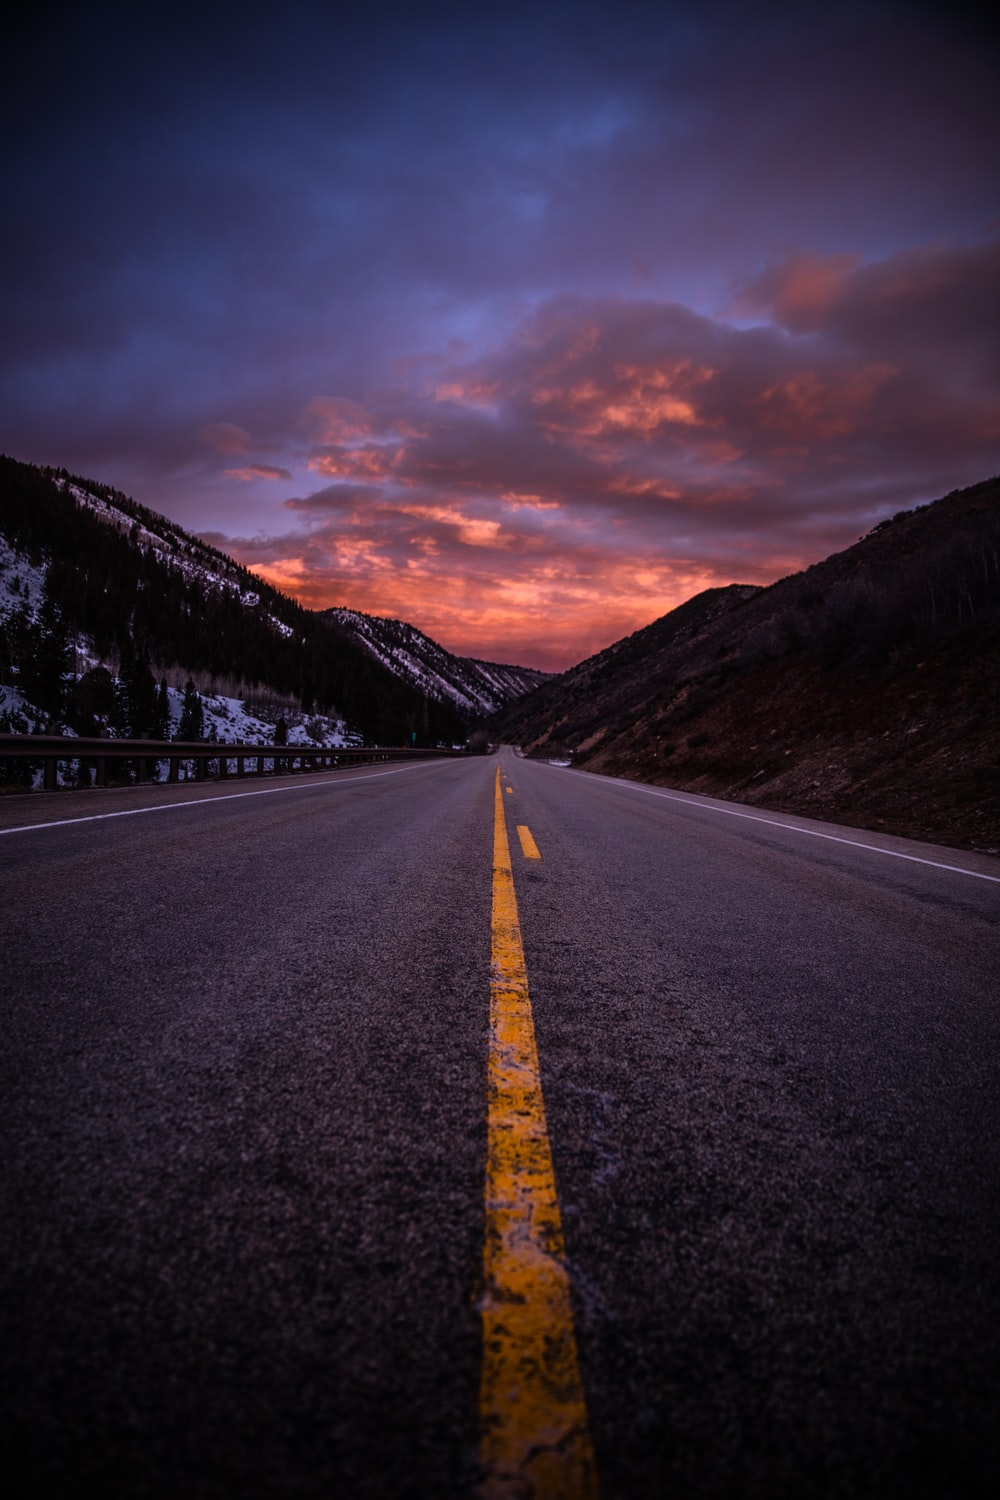 gray asphalt road between brown mountains under cloudy sky during daytime